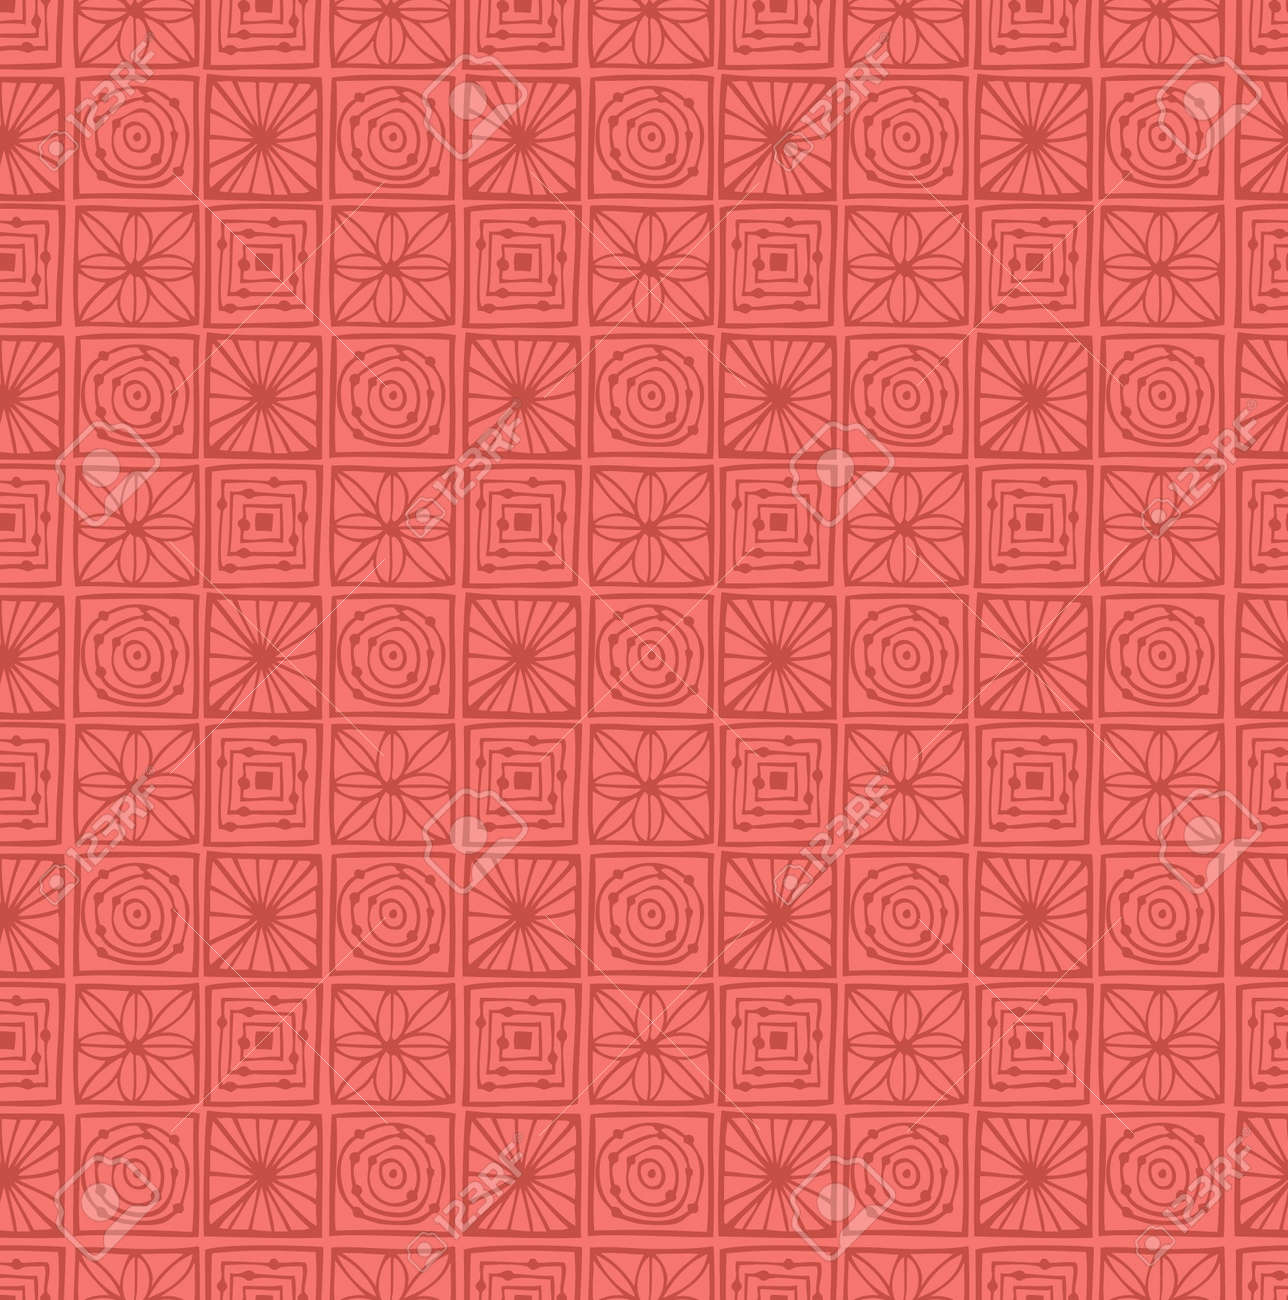 Geometric ornate seamless pattern  Pink abstract damask texture  Tile background Stock Vector - 17333325